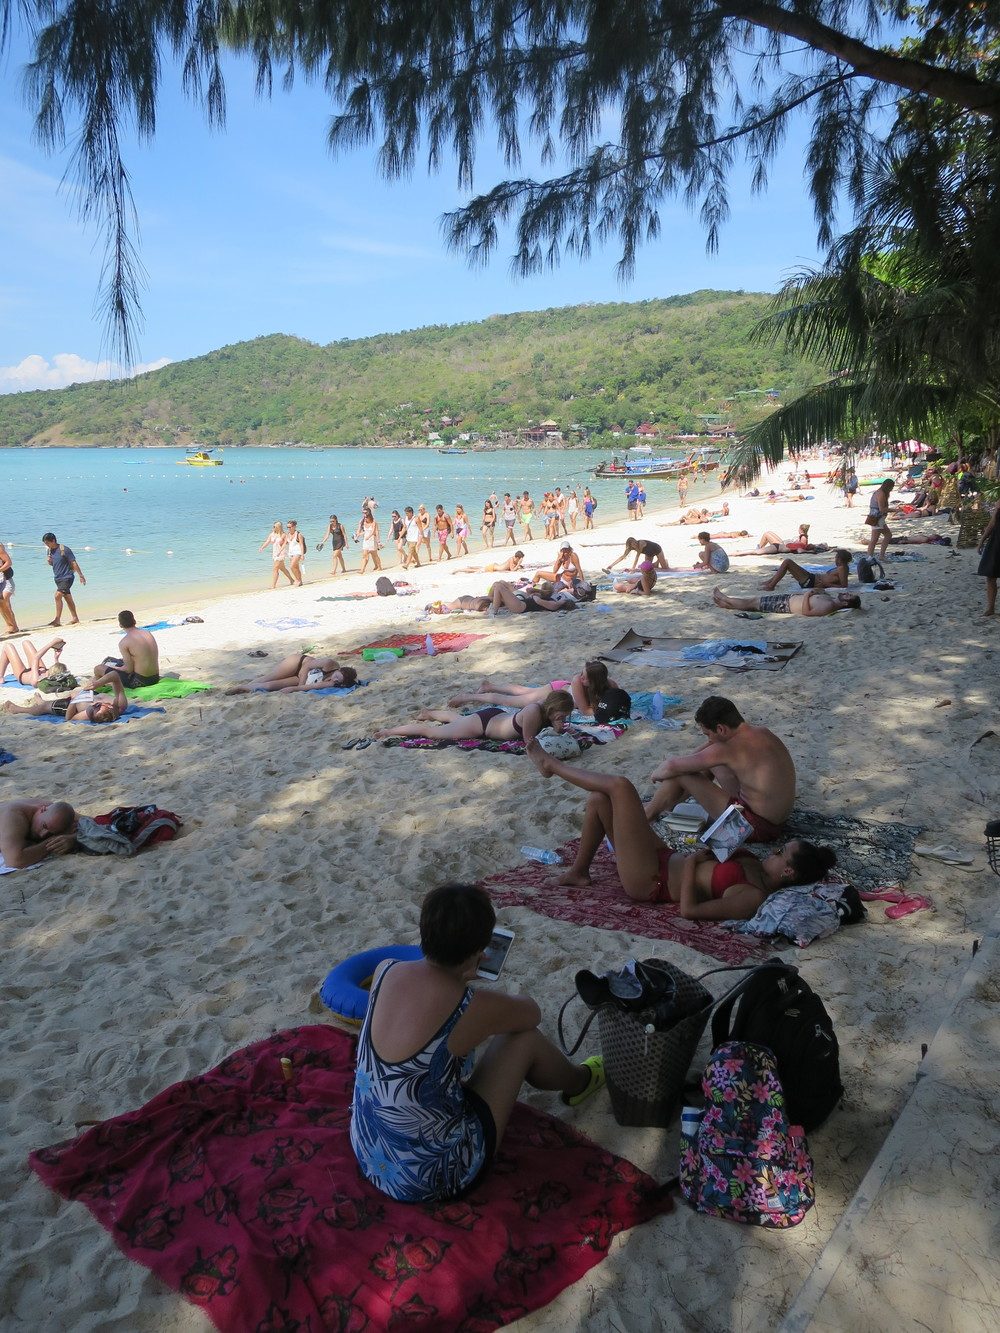 The beach on Phi Phi Don